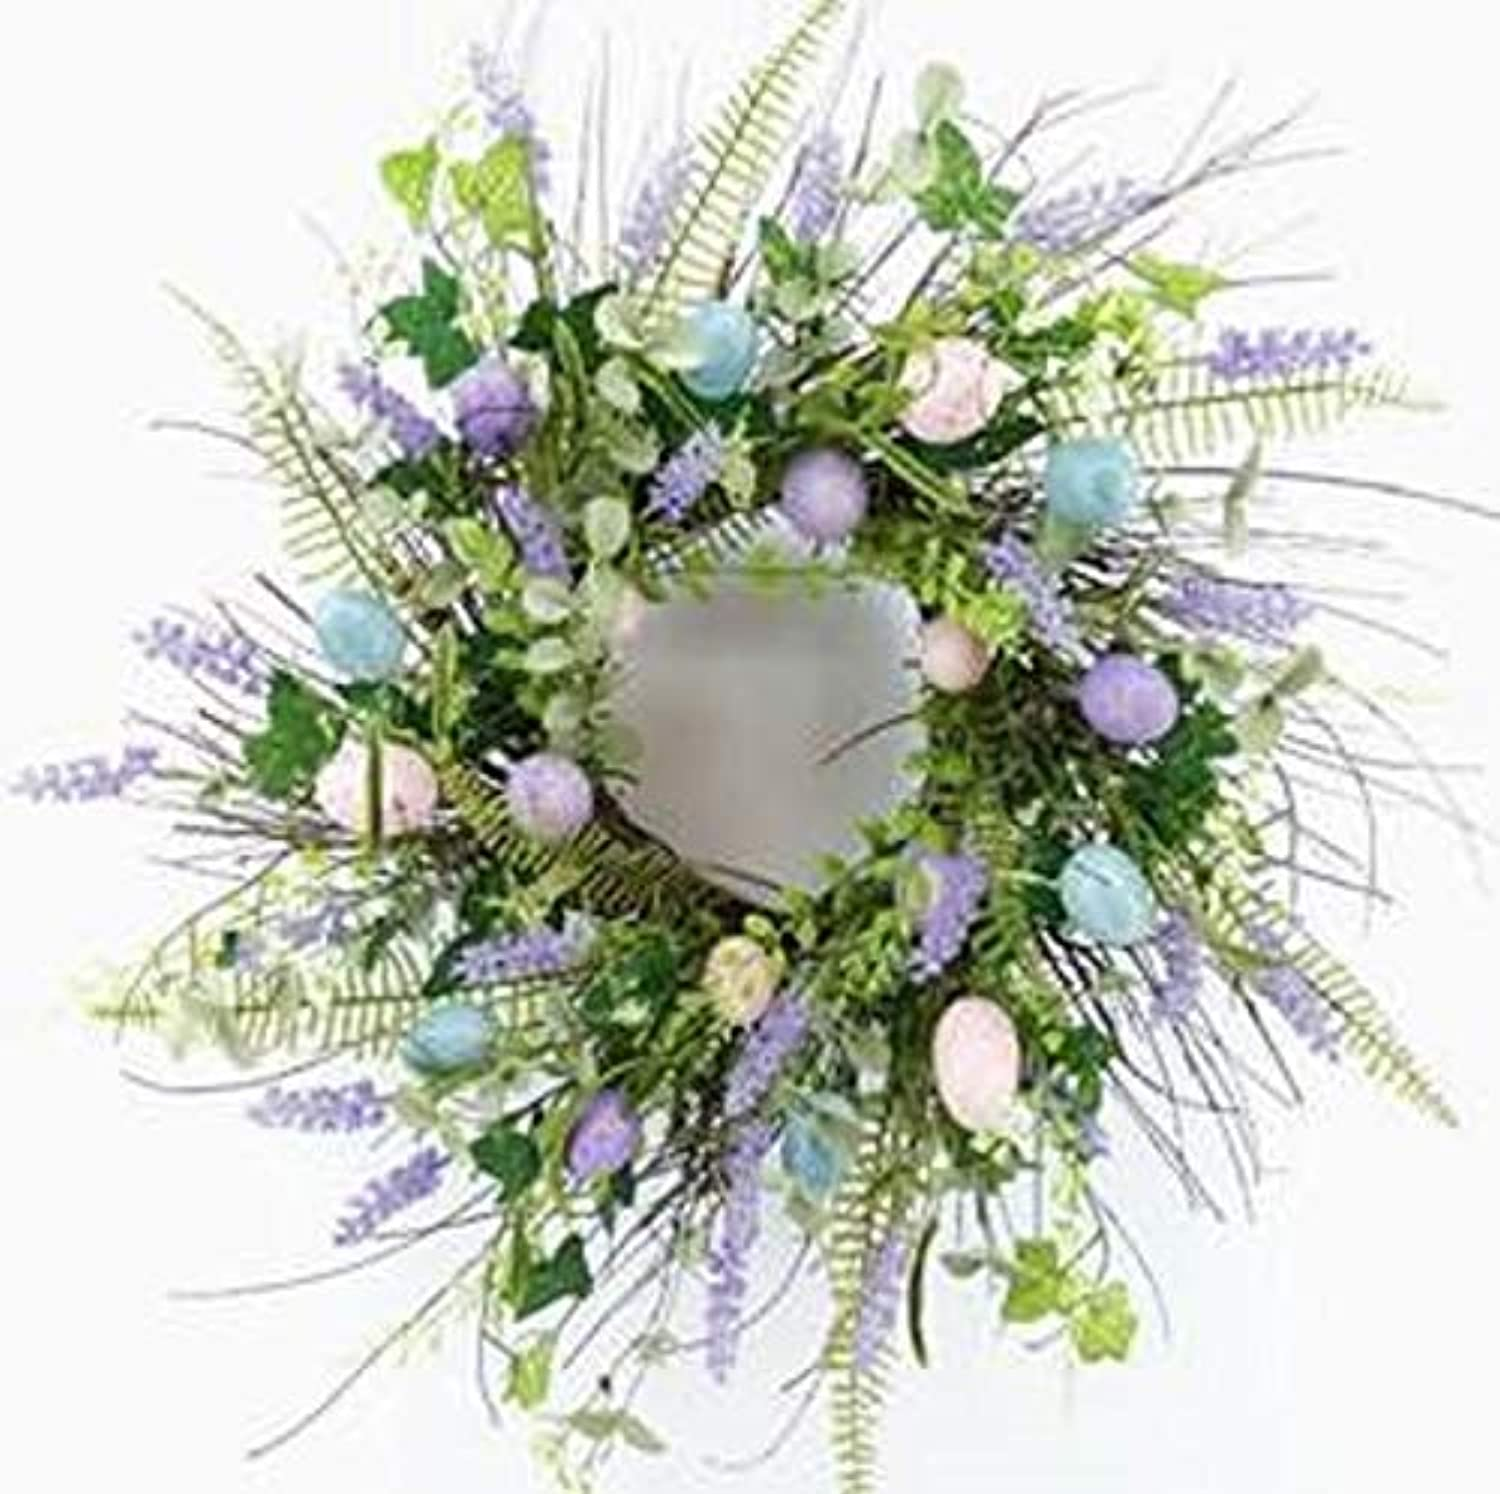 Wreaths For Door Wild Grass and Egg Spring Wreath for Front Door with Lavender Buds Pastel bluee Pink Purple Plastic Eggs Ferns Twig Base Farmhouse Easter Wreath Decor 21 Inch